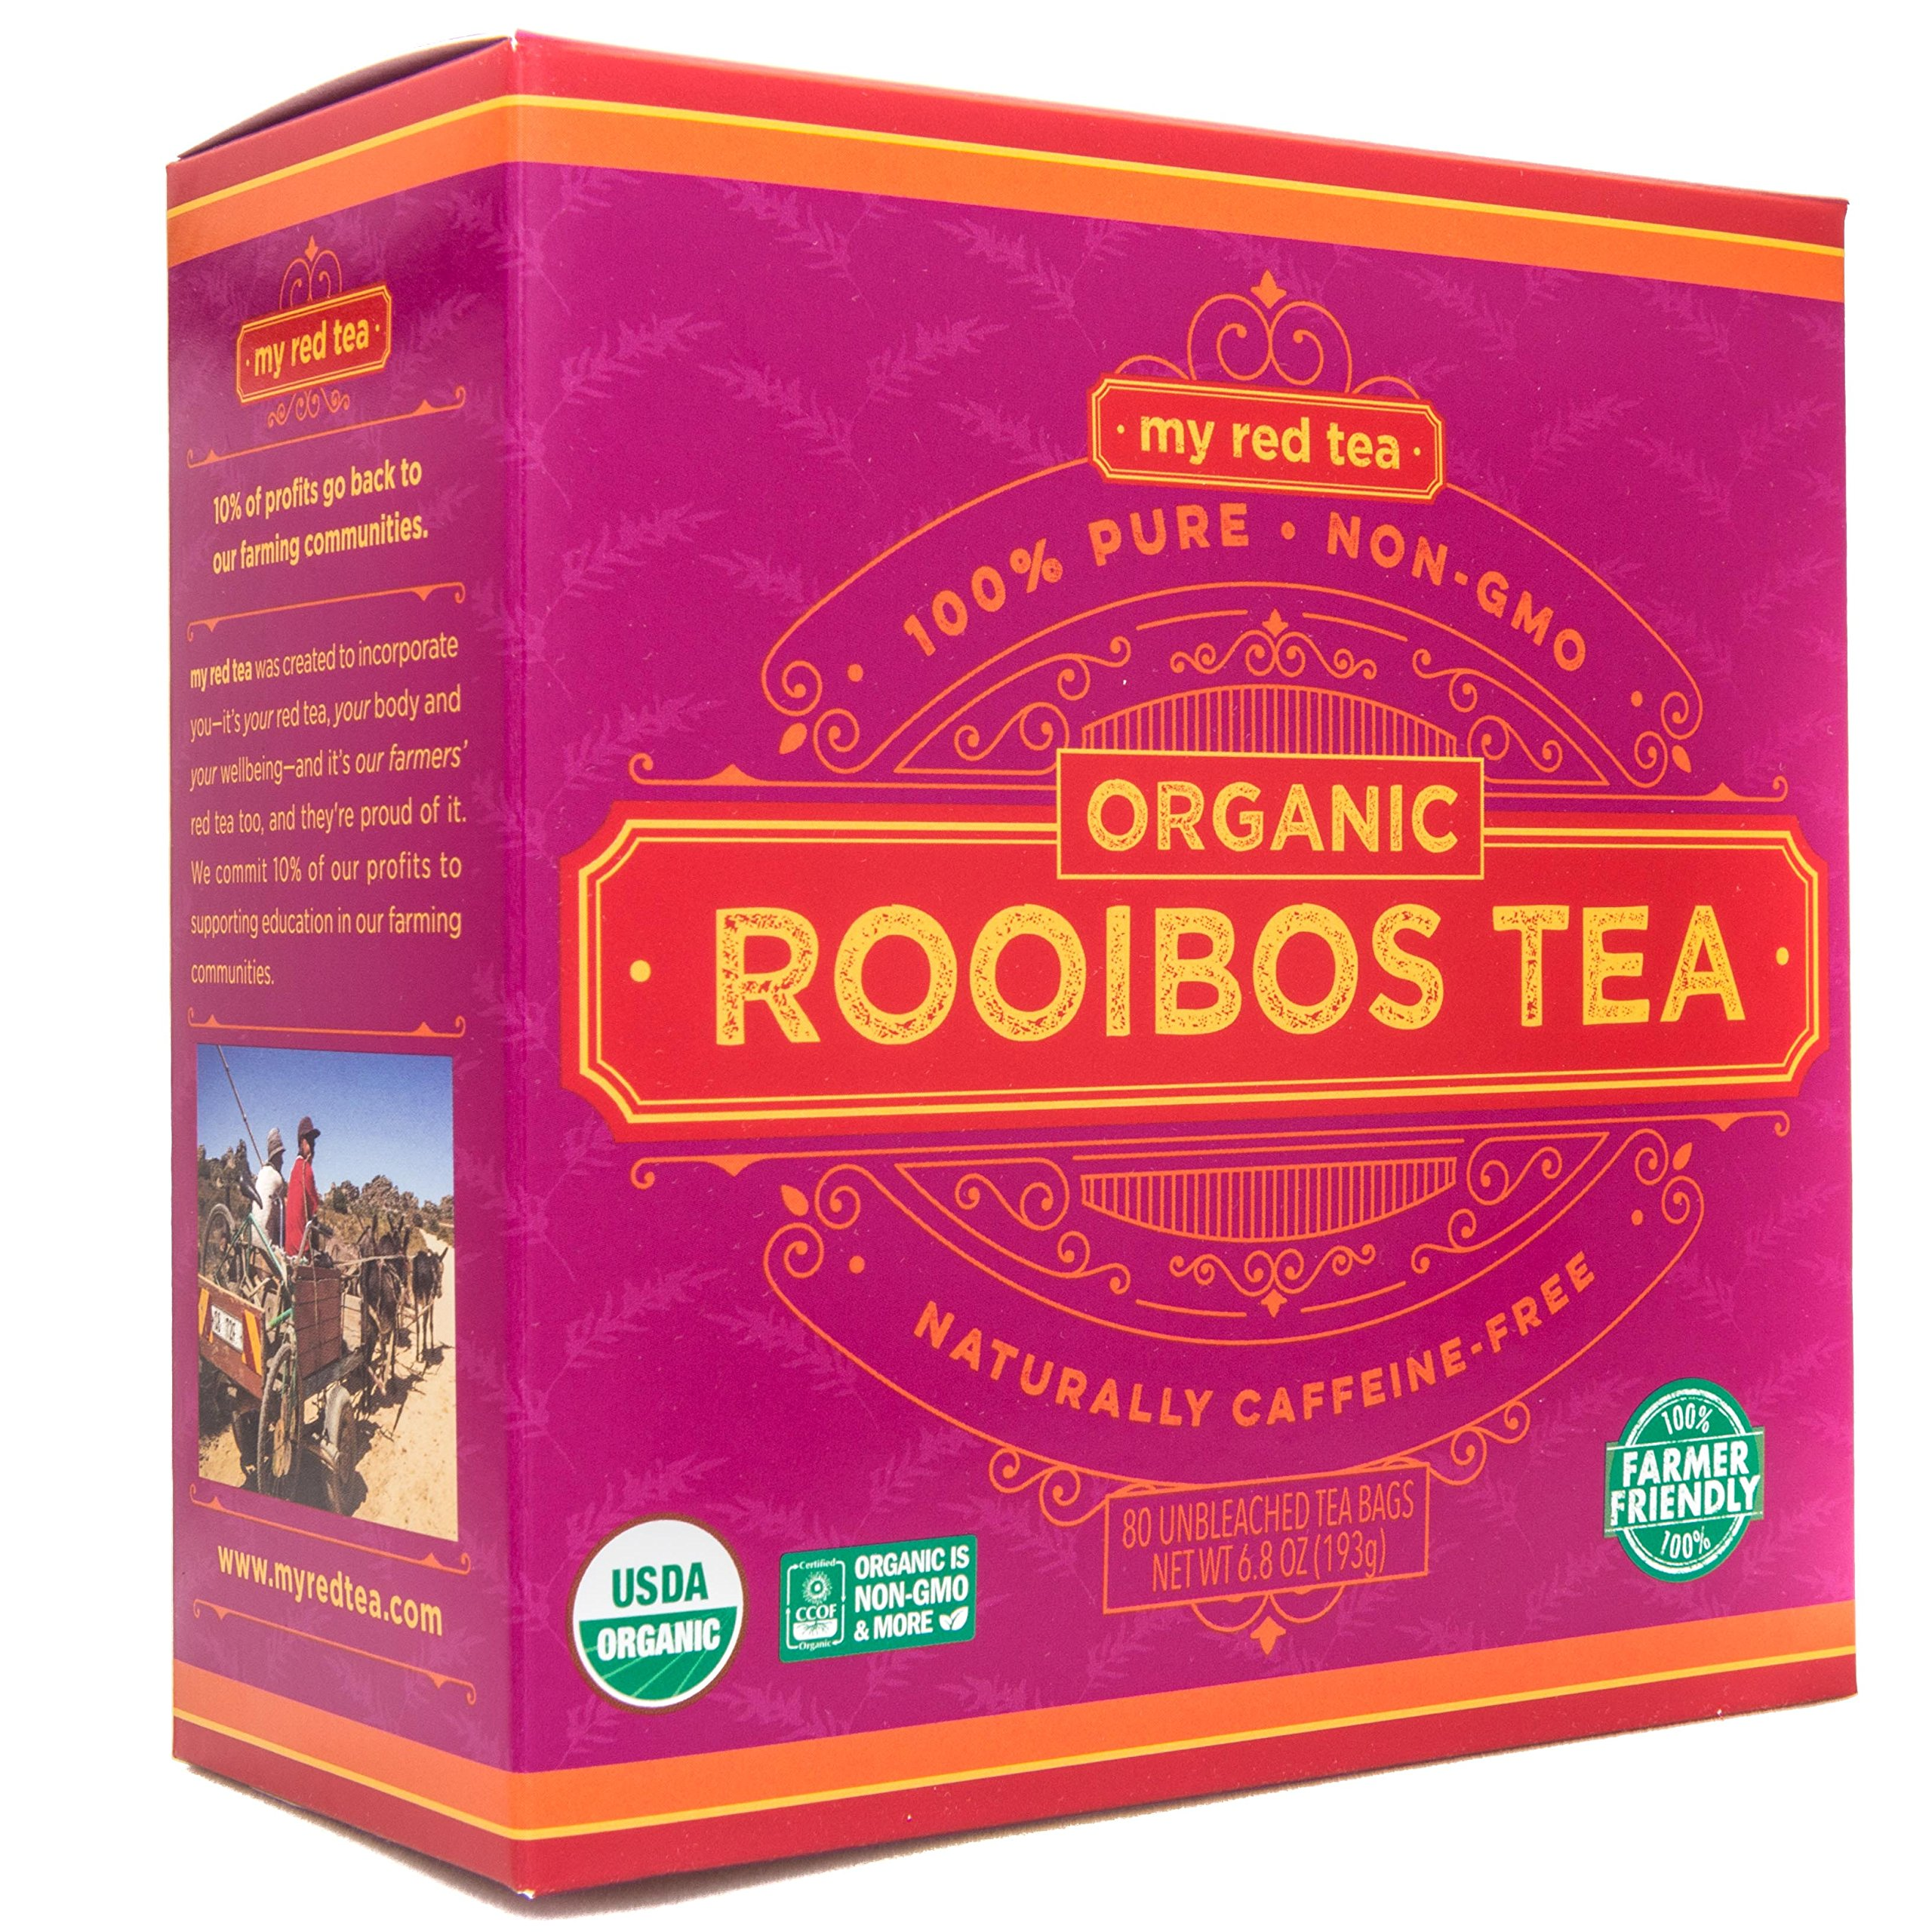 Rooibos Tea, USDA Certified Organic Tea, MY RED TEA. Tagless South African, 100% Pure, Single Origin, Natural, Farmer Friendly, GMO and Caffeine Free (80) by My Red Tea